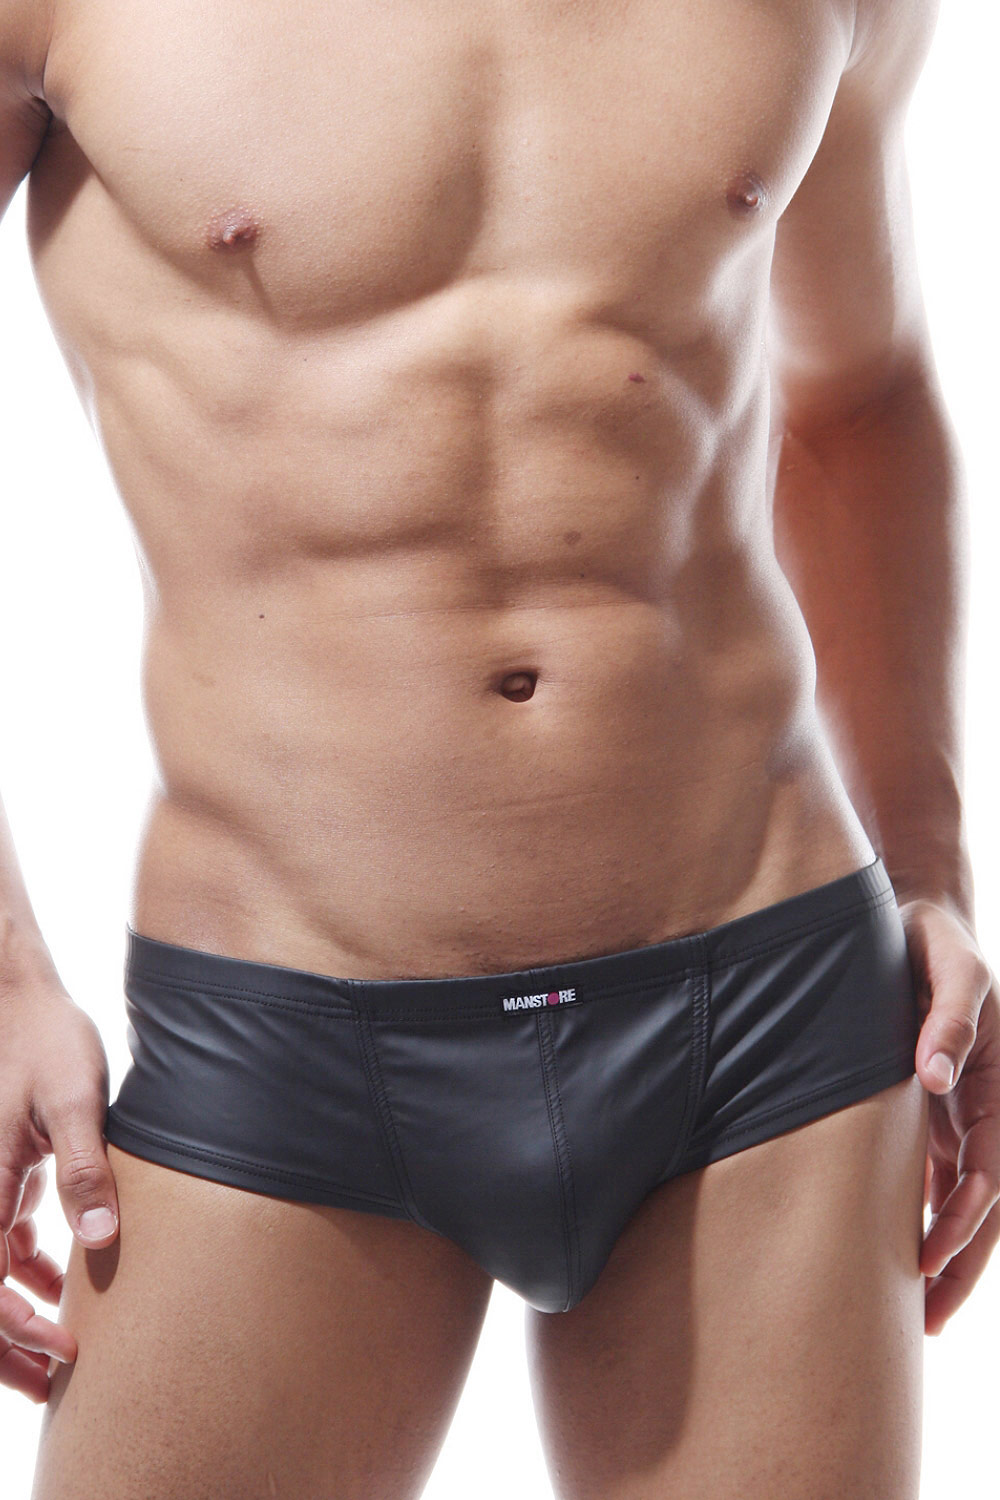 MANSTORE M104 micropo brief at oboy.com